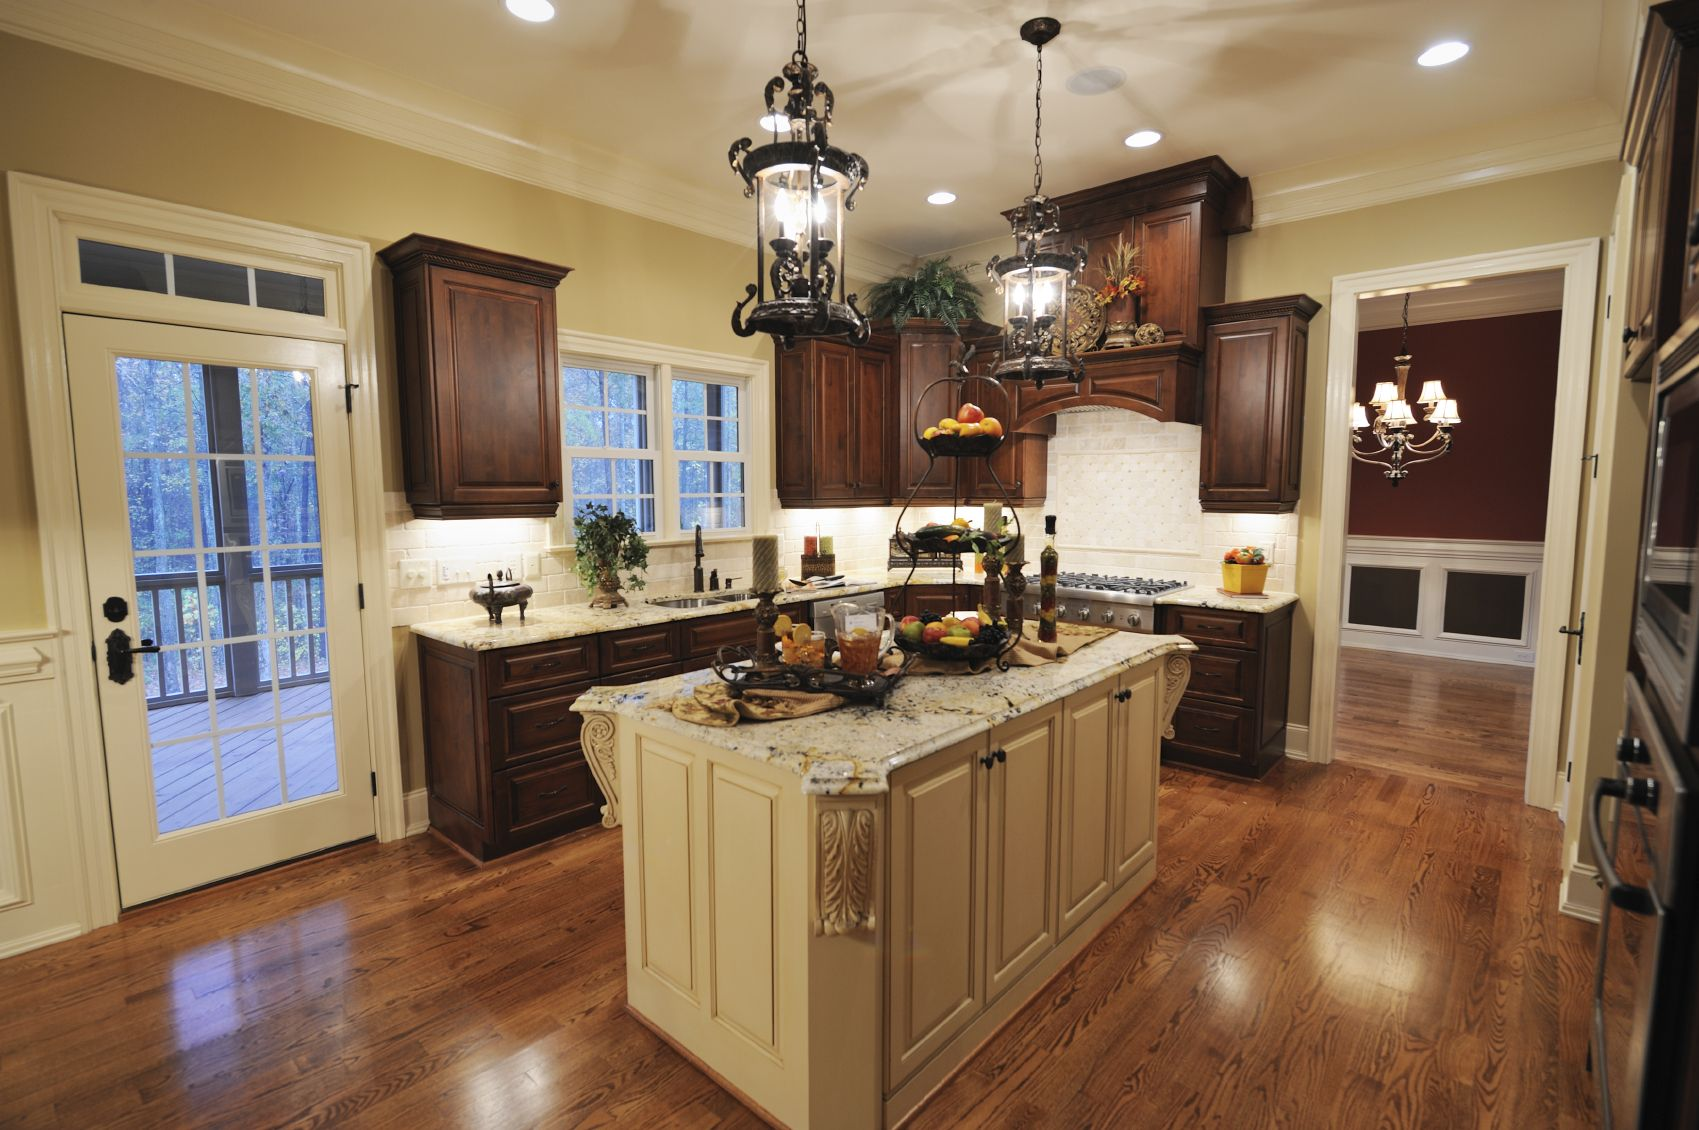 Kitchen paint colors with light wood cabinets - 41 Luxury U Shaped Kitchen Designs Layouts Photos